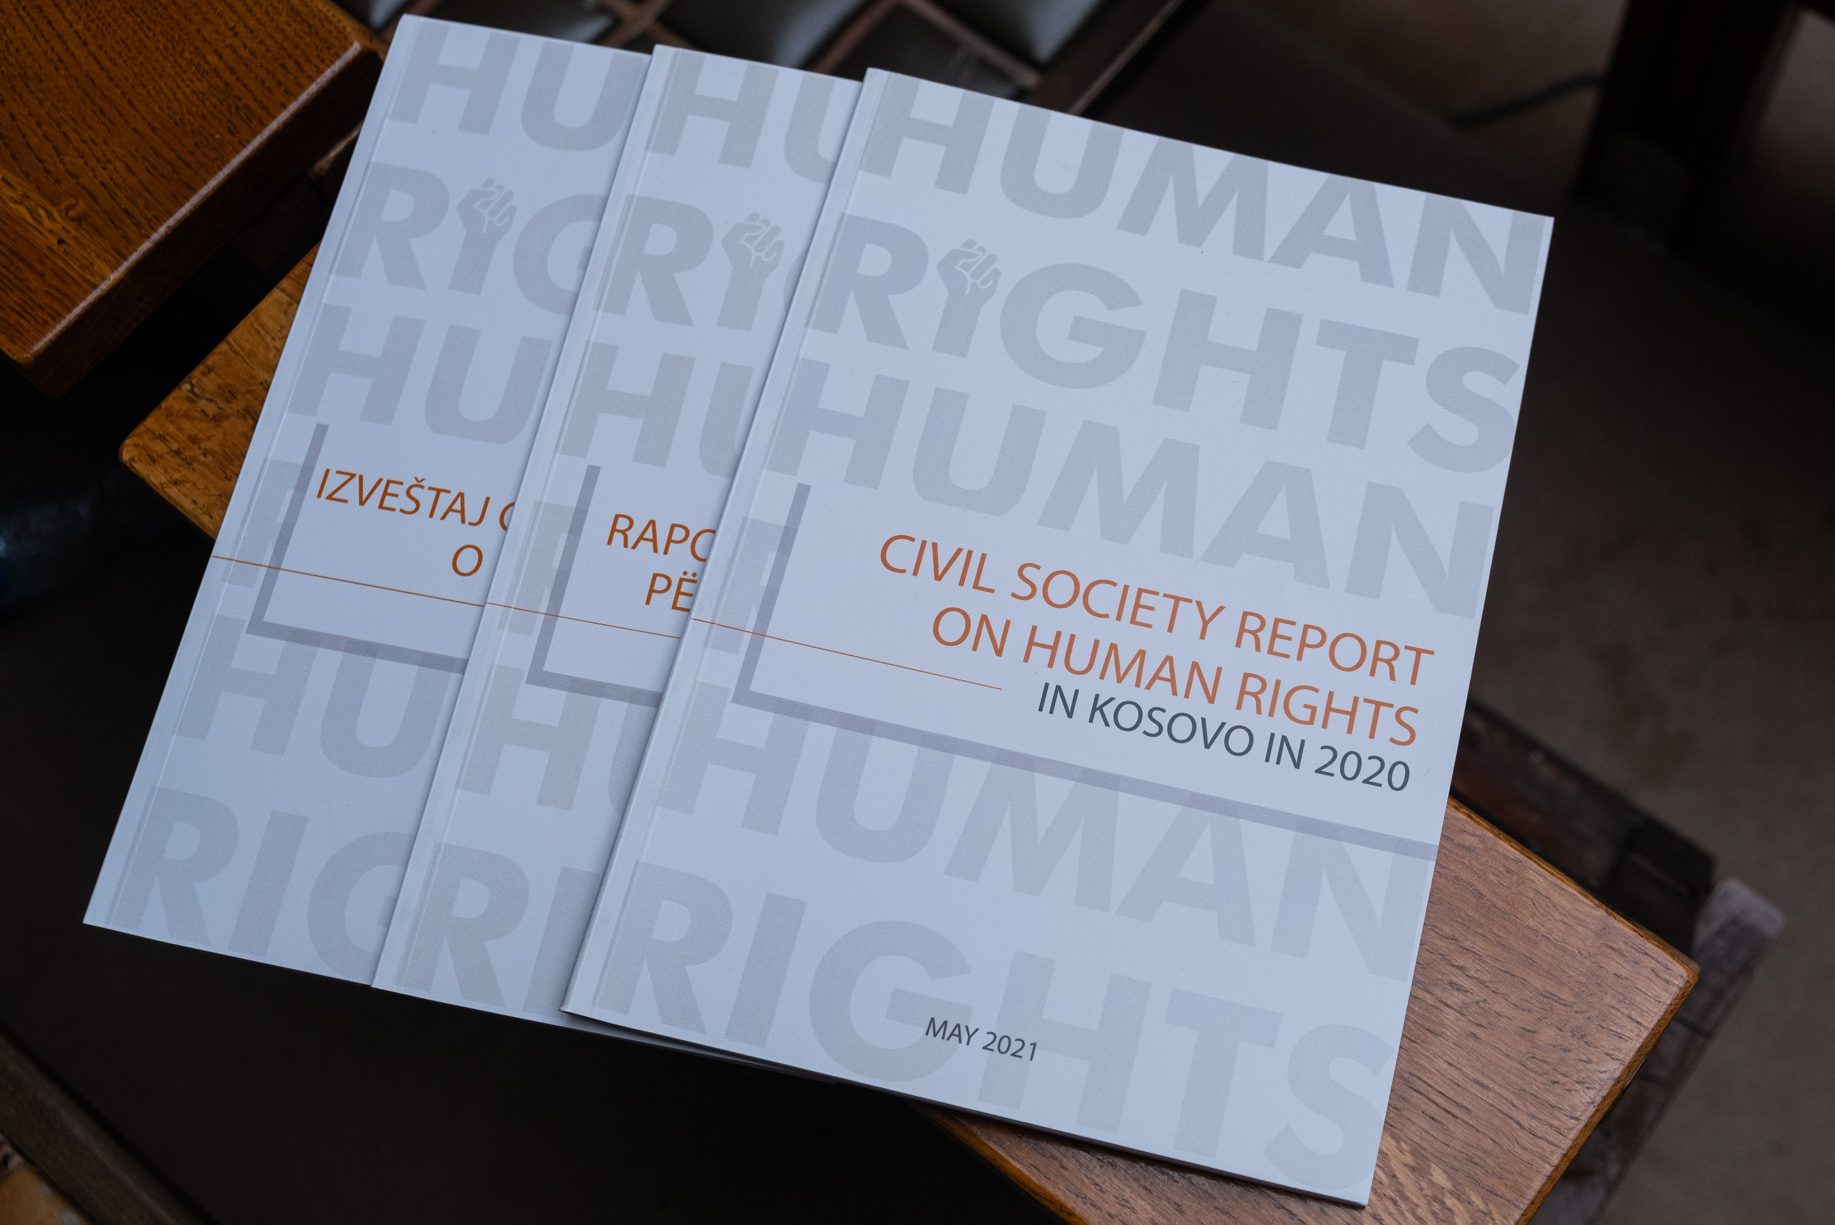 LAUNCH OF THE SECOND JOINT CIVIL SOCIETY REPORT ON HUMAN RIGHTS IN KOSOVO IN 2020